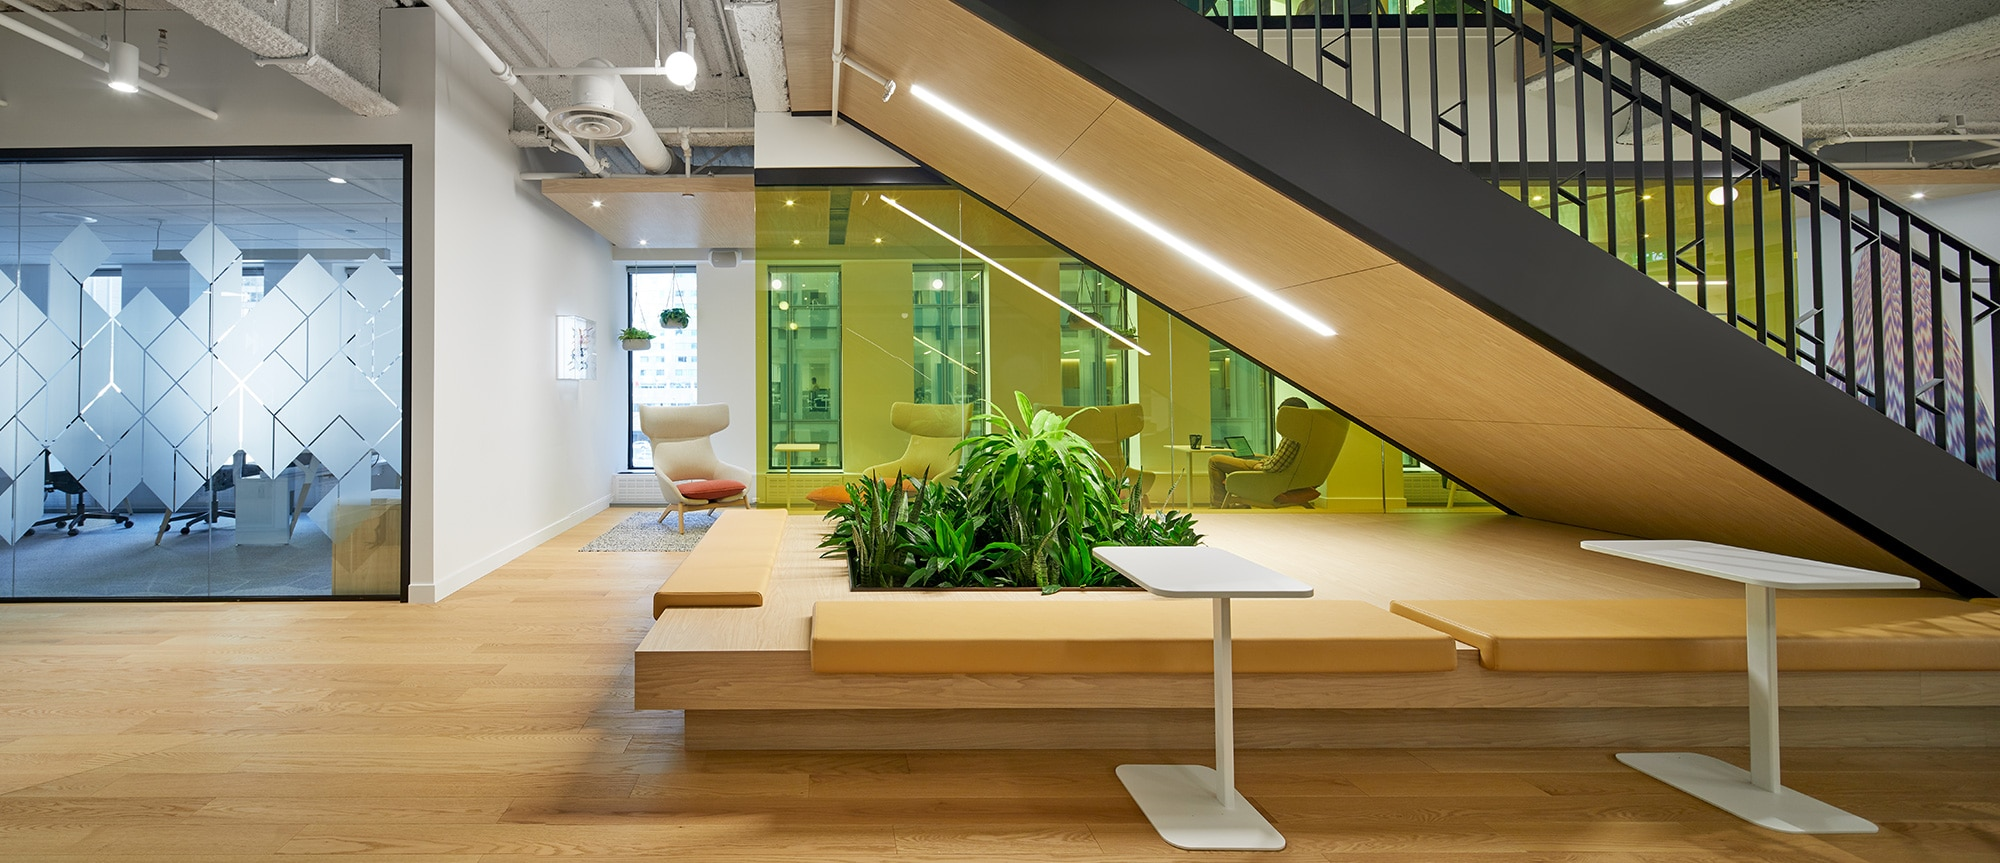 Staircase and plants at the Montreal FinTech Station design by VAD